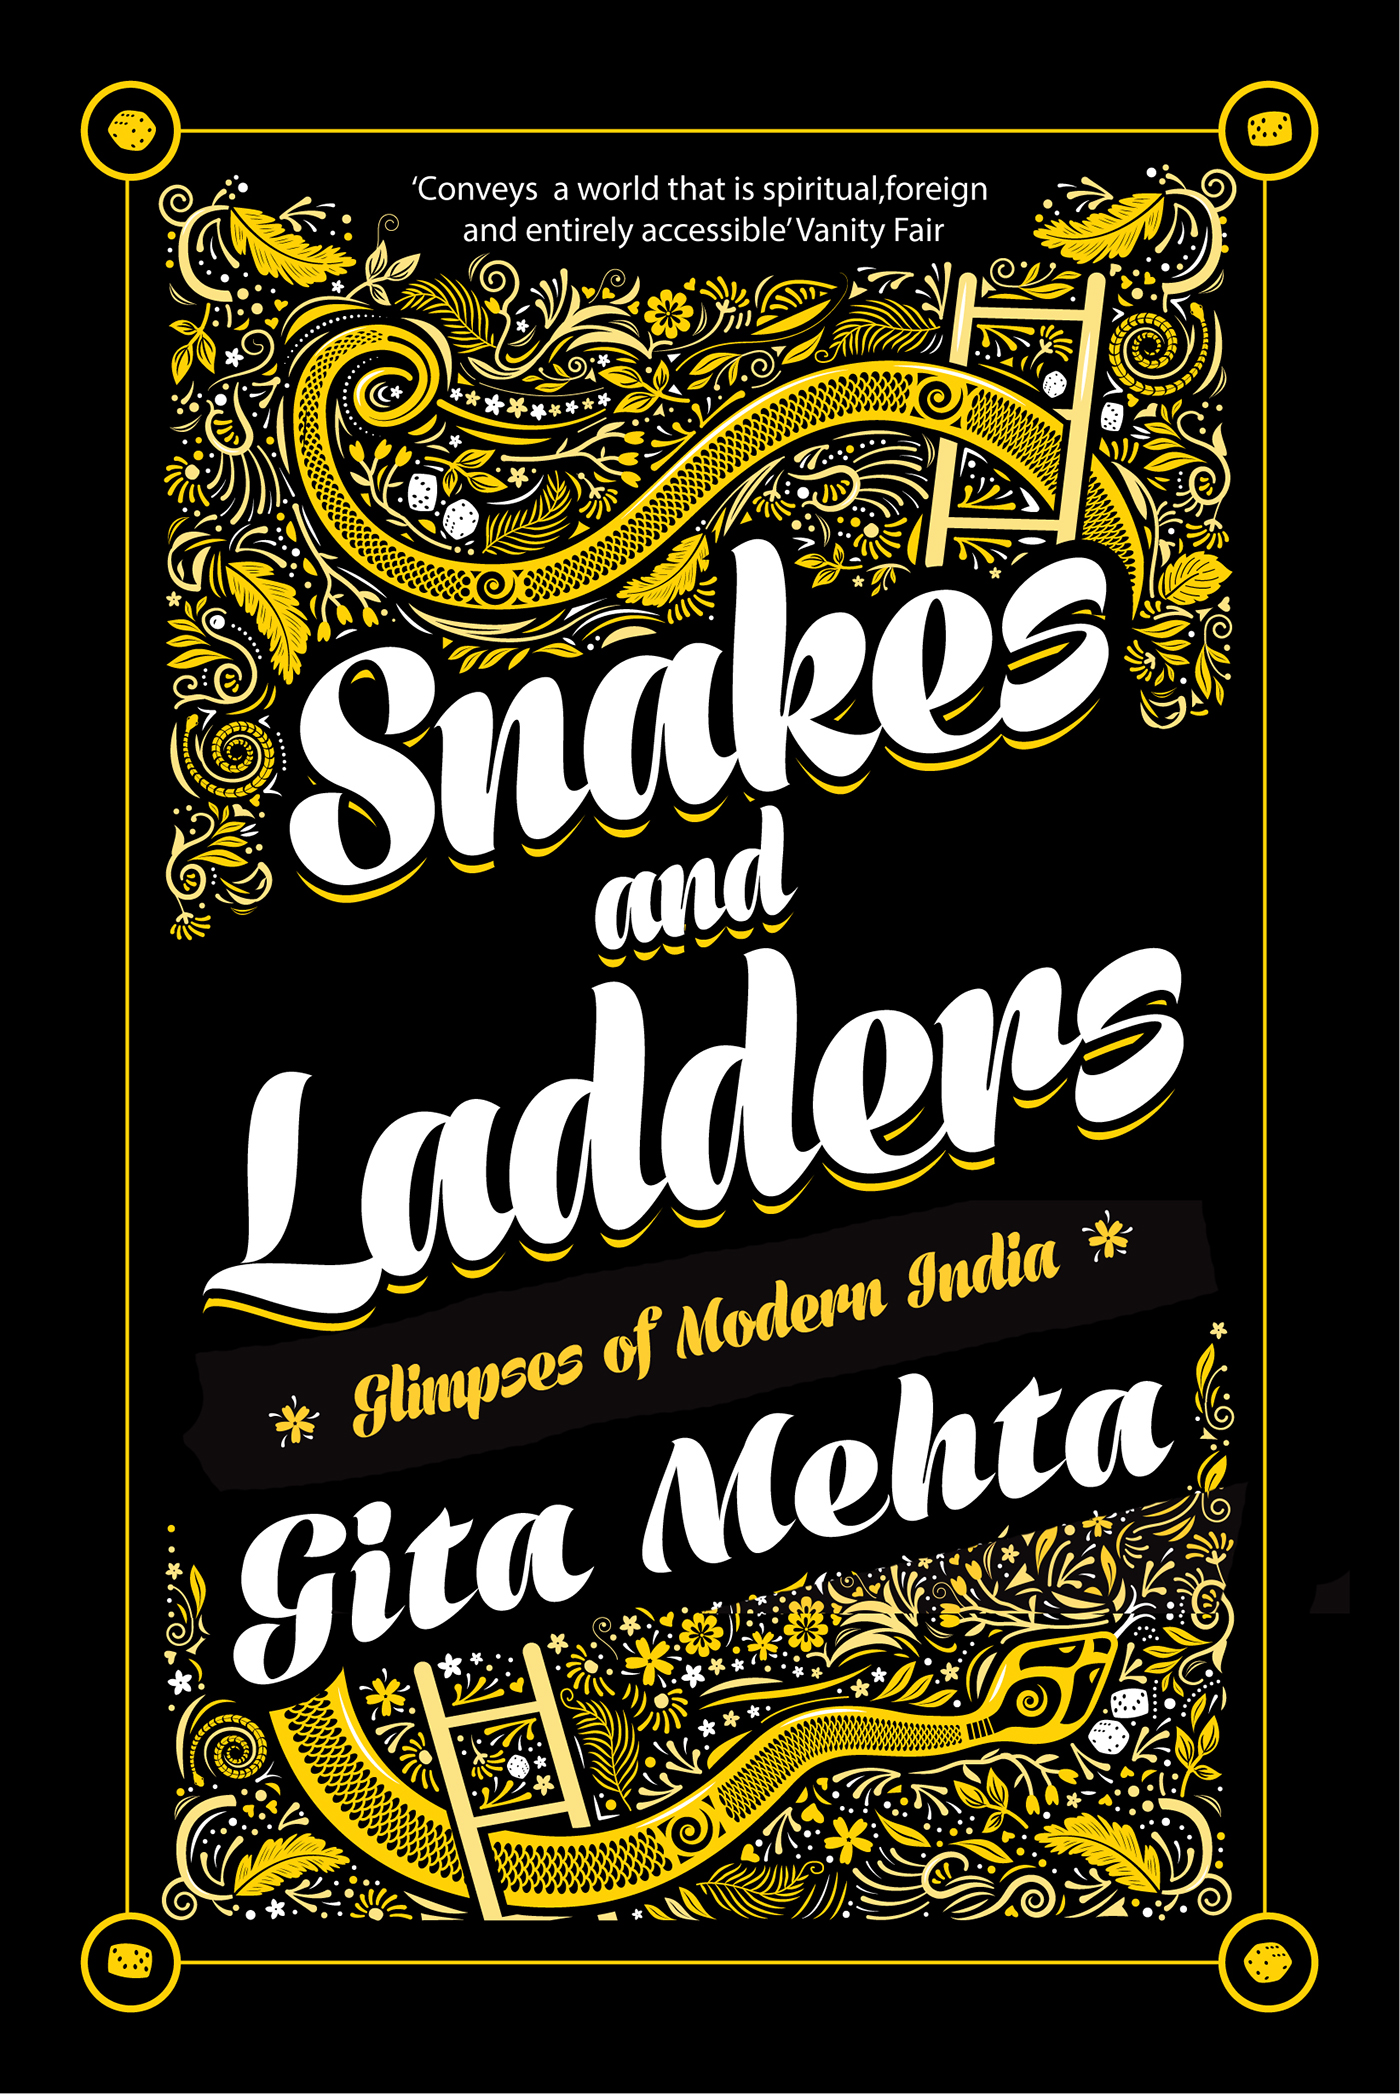 Gita Mehta karma cola raj River Sutra snakes and ladders India Indian Author penguin books indian vibrant Indian Writing publishing   book cover cover design pattern